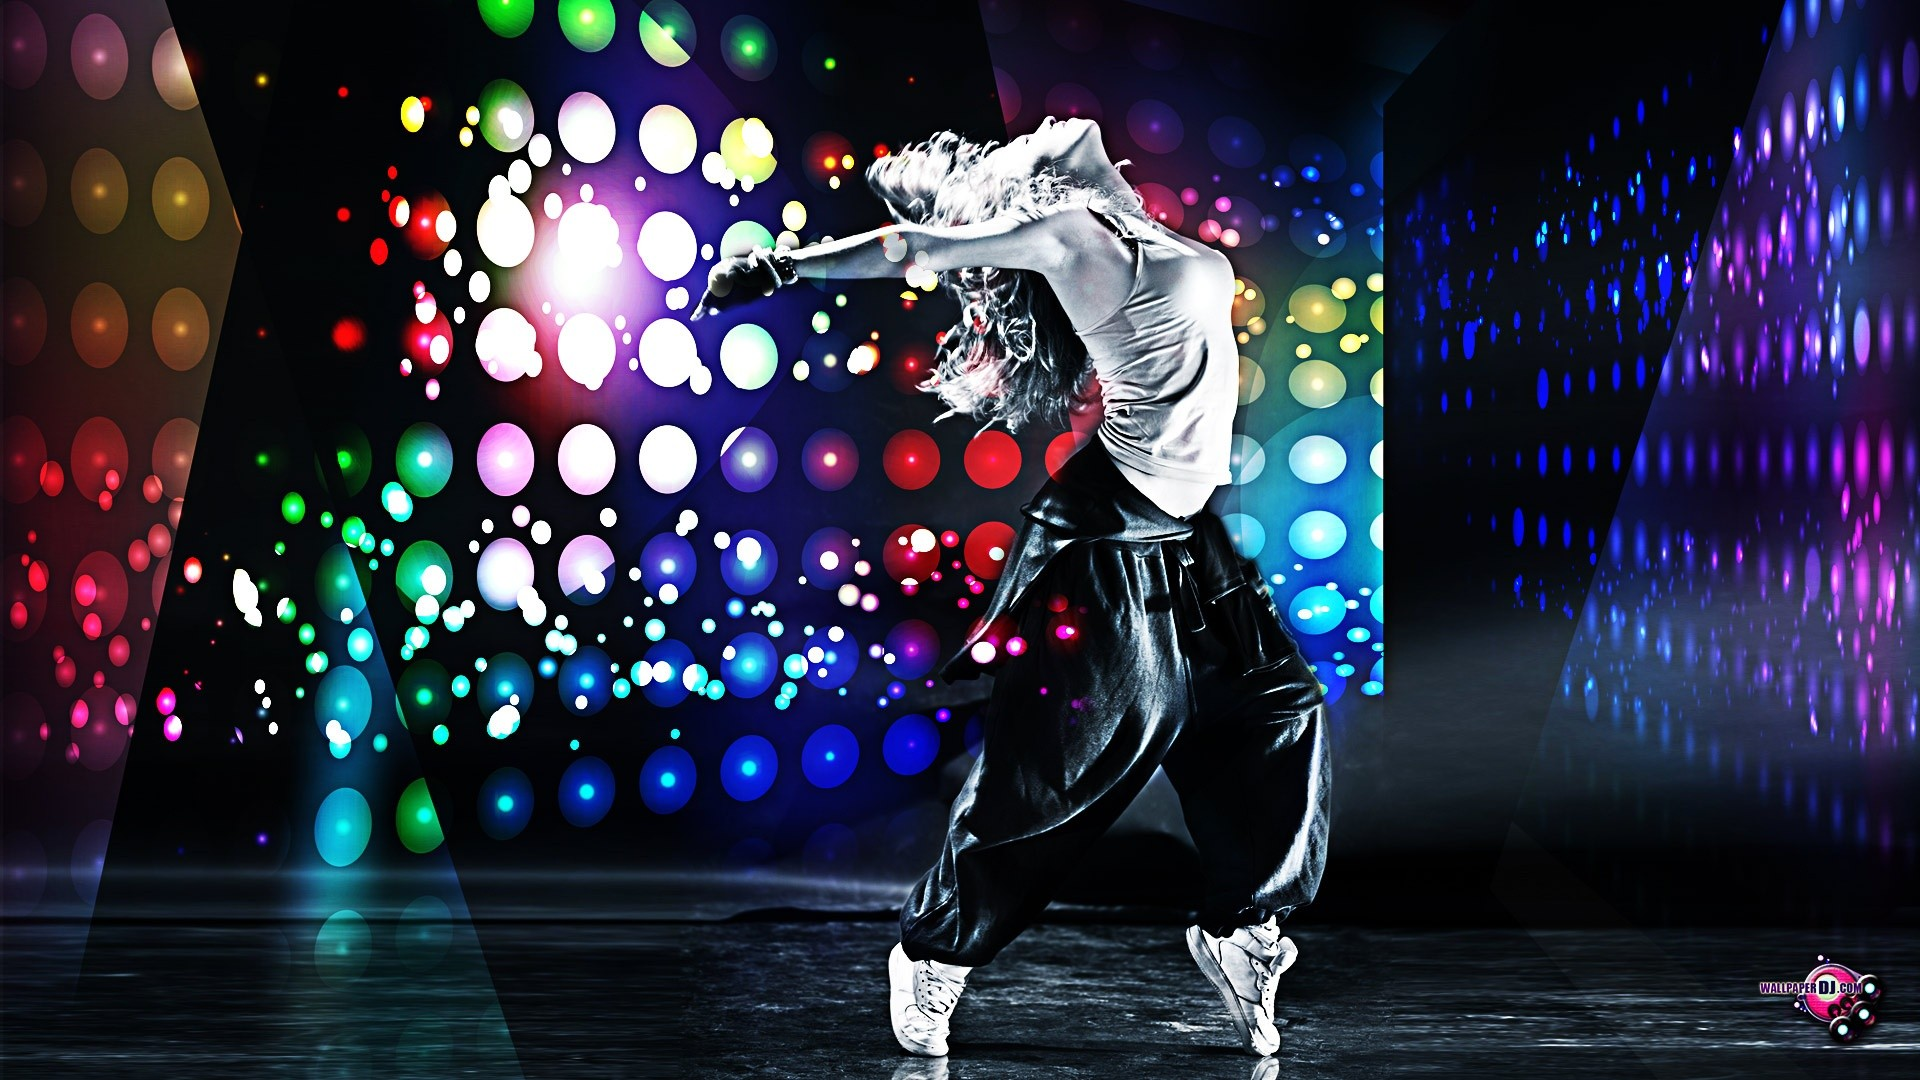 70 Dance HD Wallpapers | Backgrounds - Wallpaper Abyss - Page 2